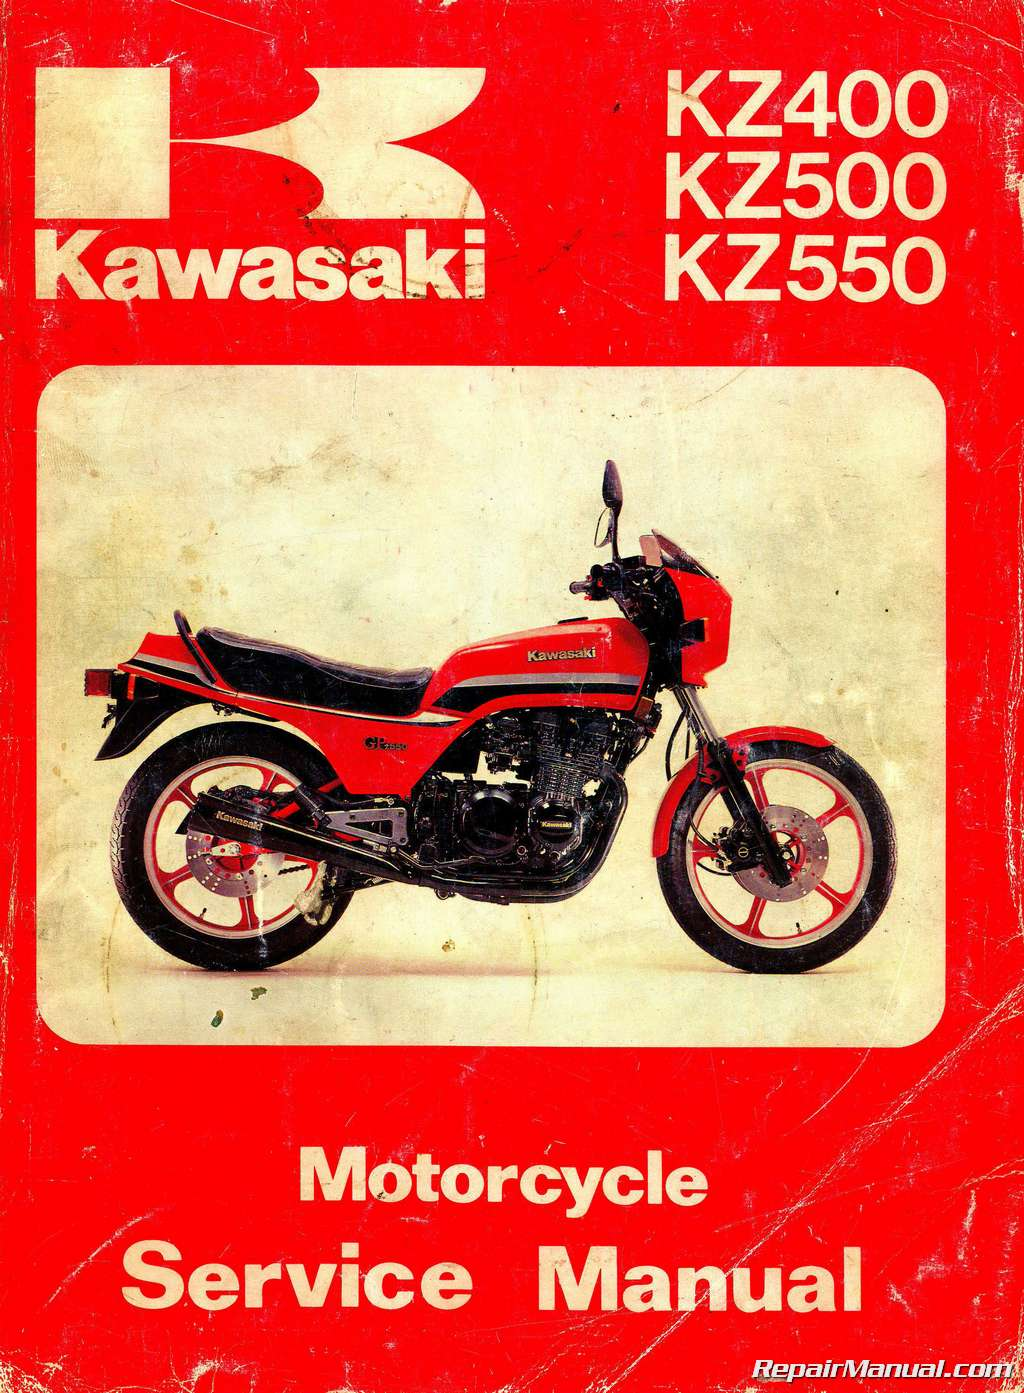 kawasaki kz400 kz500 kz550 motorcycle service manual repair kawasaki kz400 kz500 kz550 service manual page 1